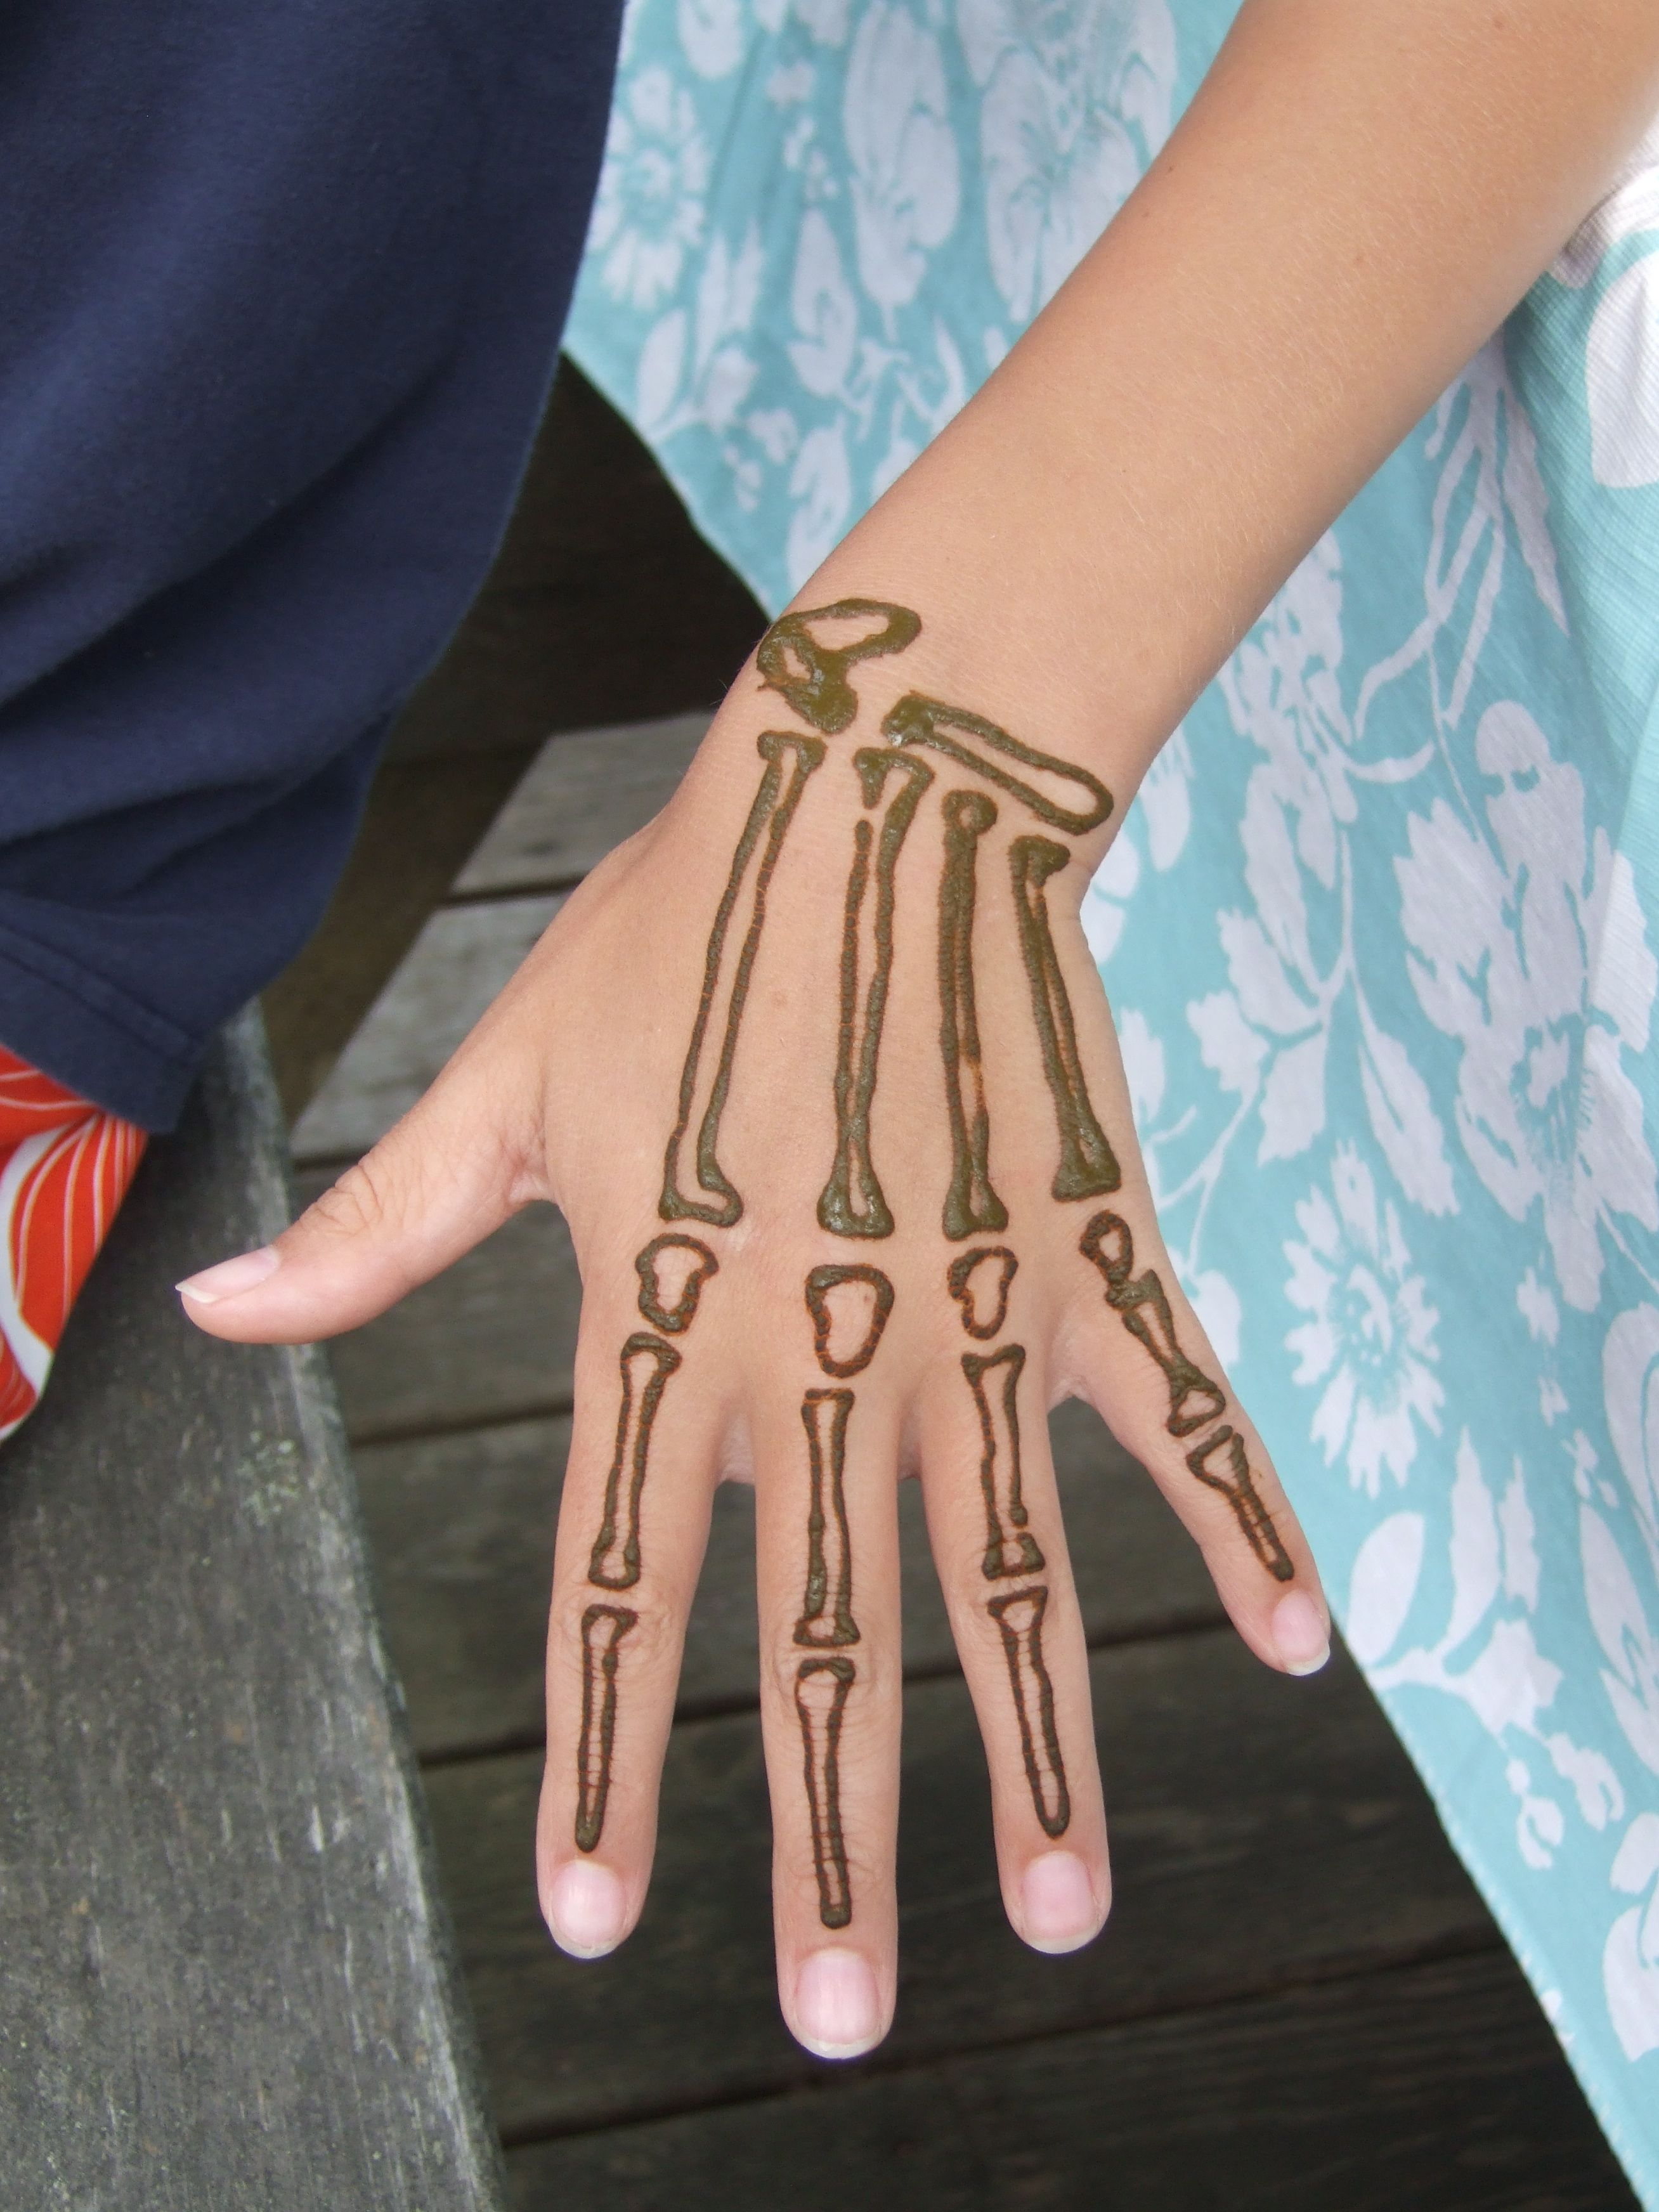 Check out more henna pictures at